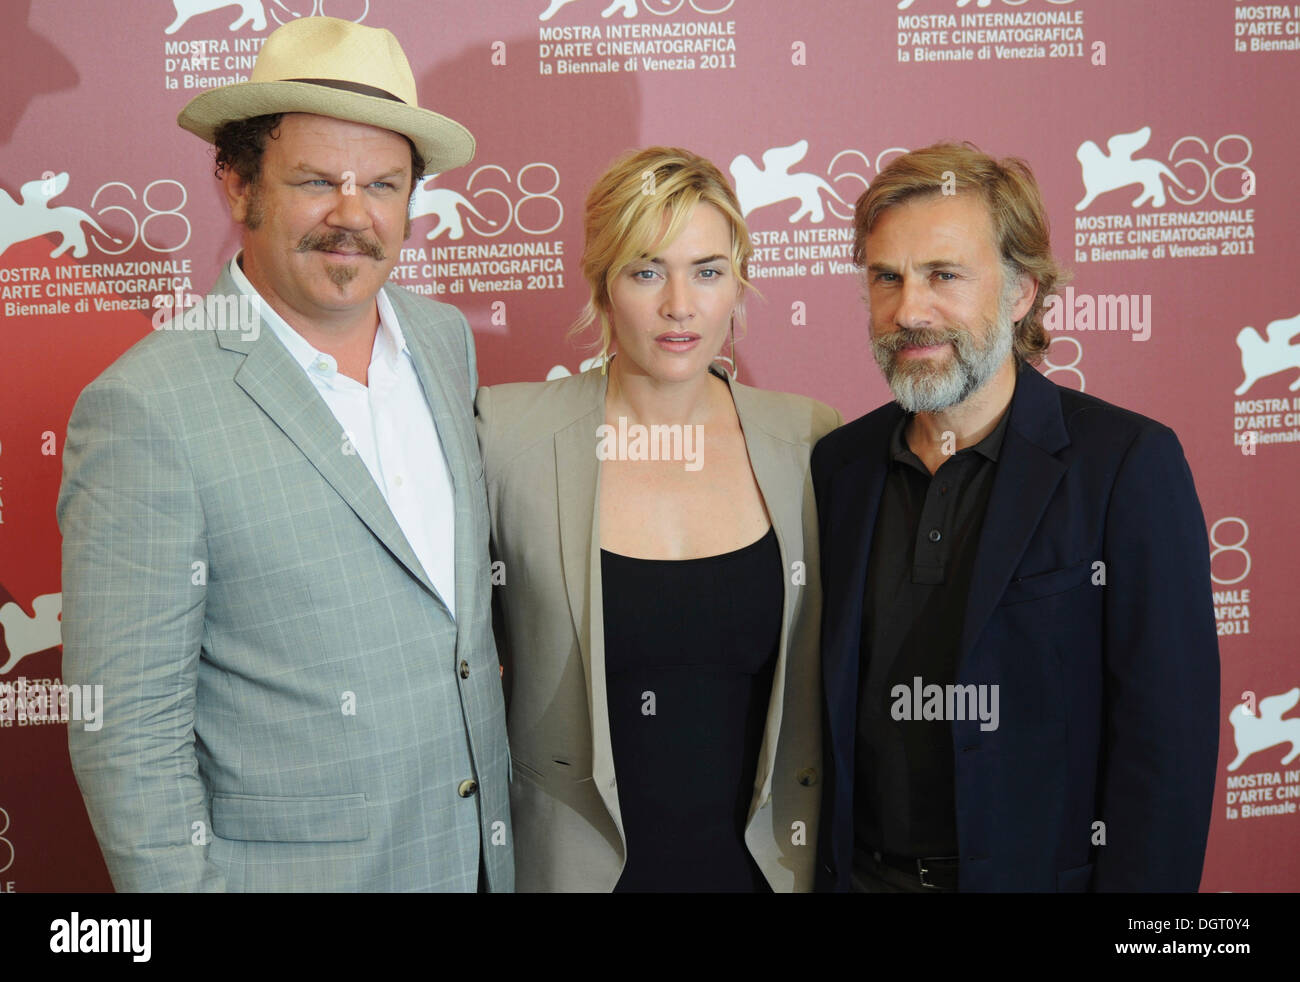 John C Reilly, Kate Winslet and Christoph Waltz attending a photocall for the film Carnage, 68th International Film Festival of - Stock Image